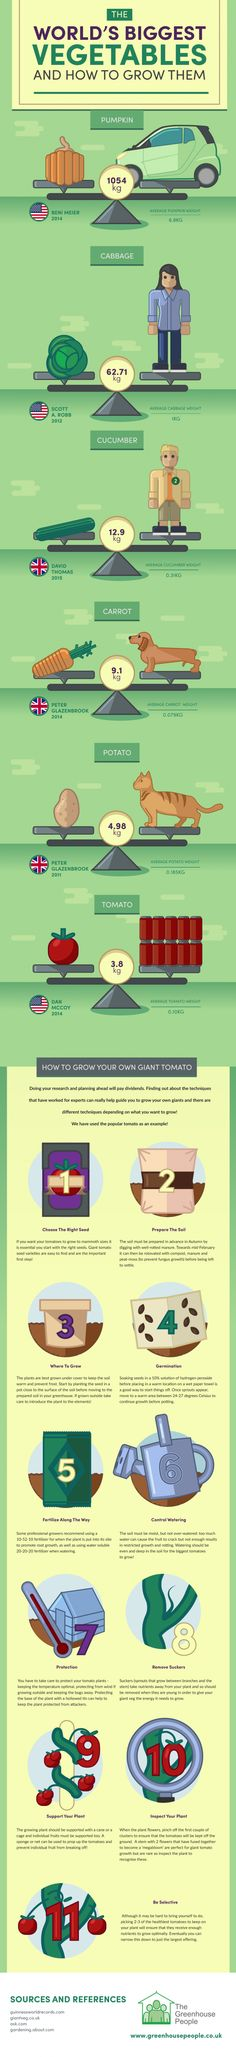 The world's biggest vegetables & how to grow them